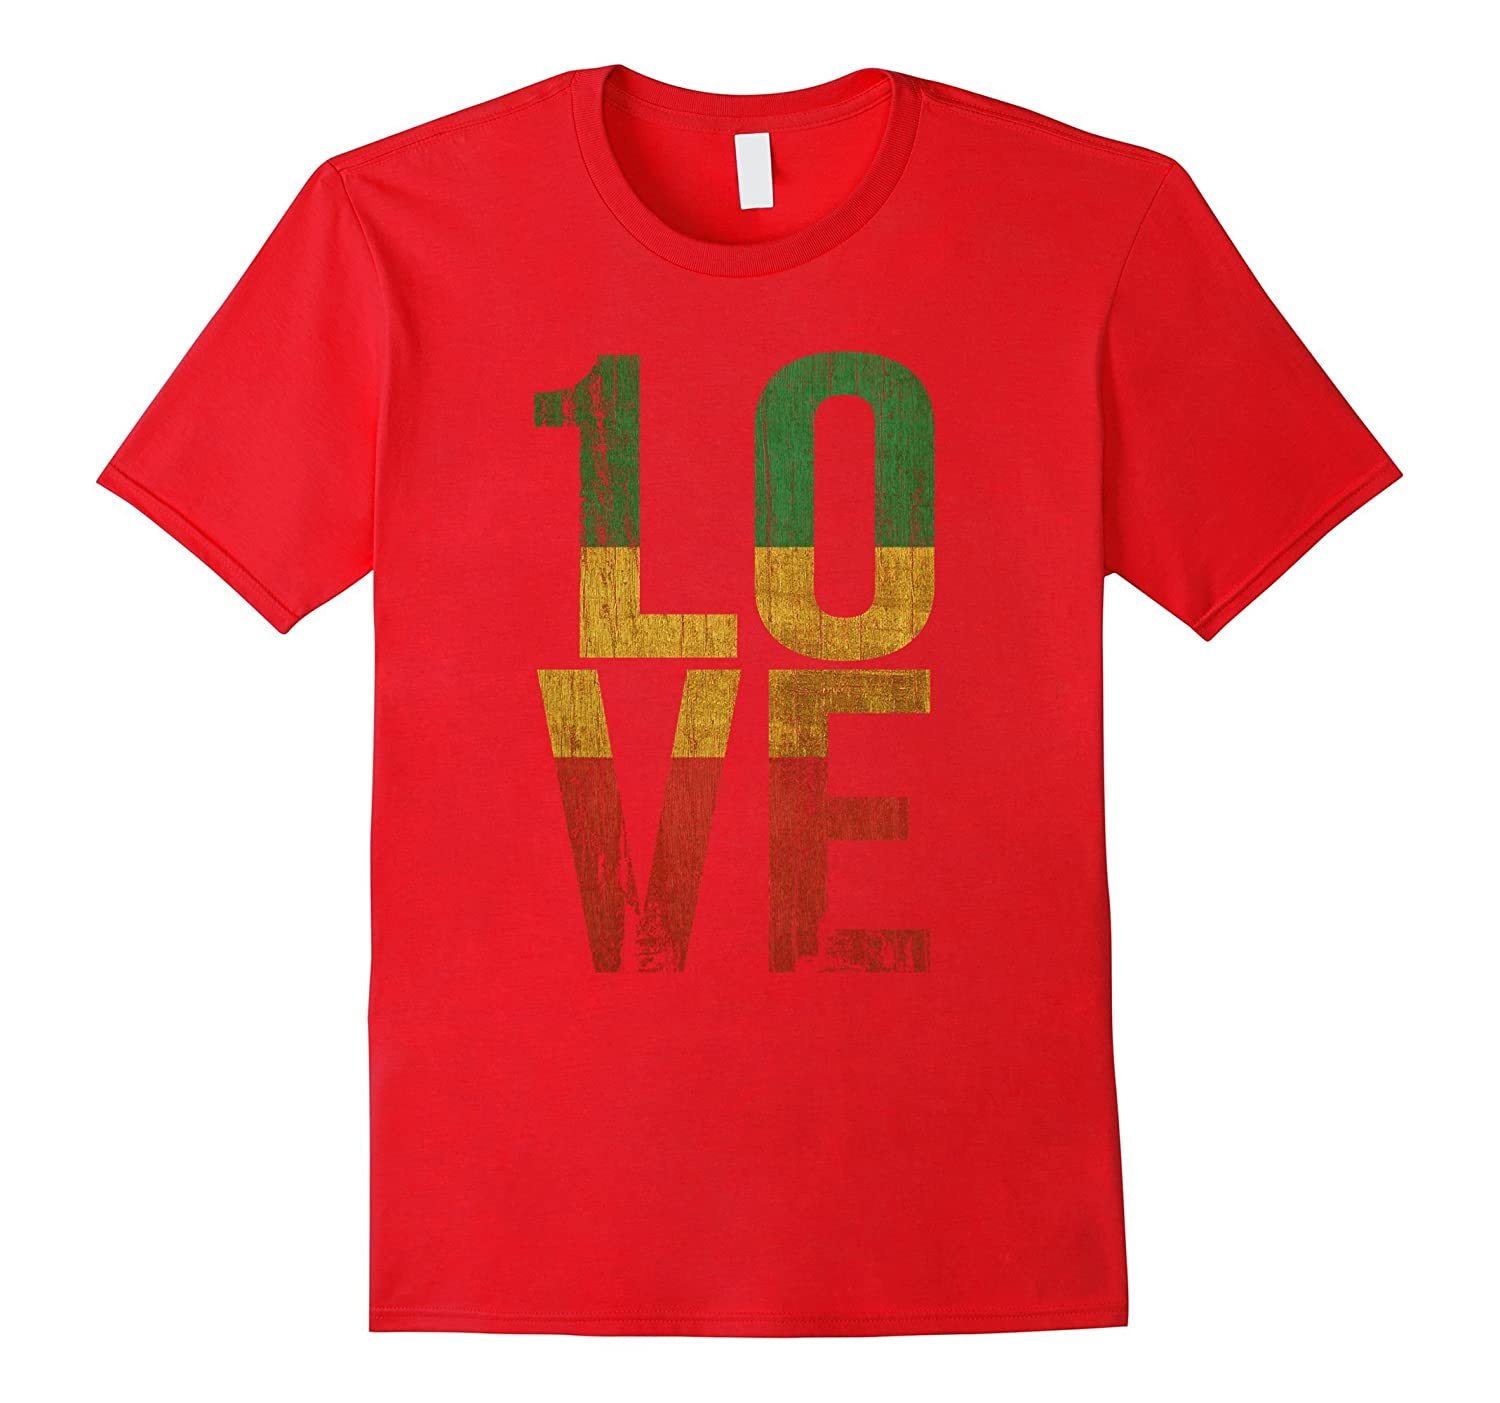 1 Love T Shirt For Reggae Music Fans-RT